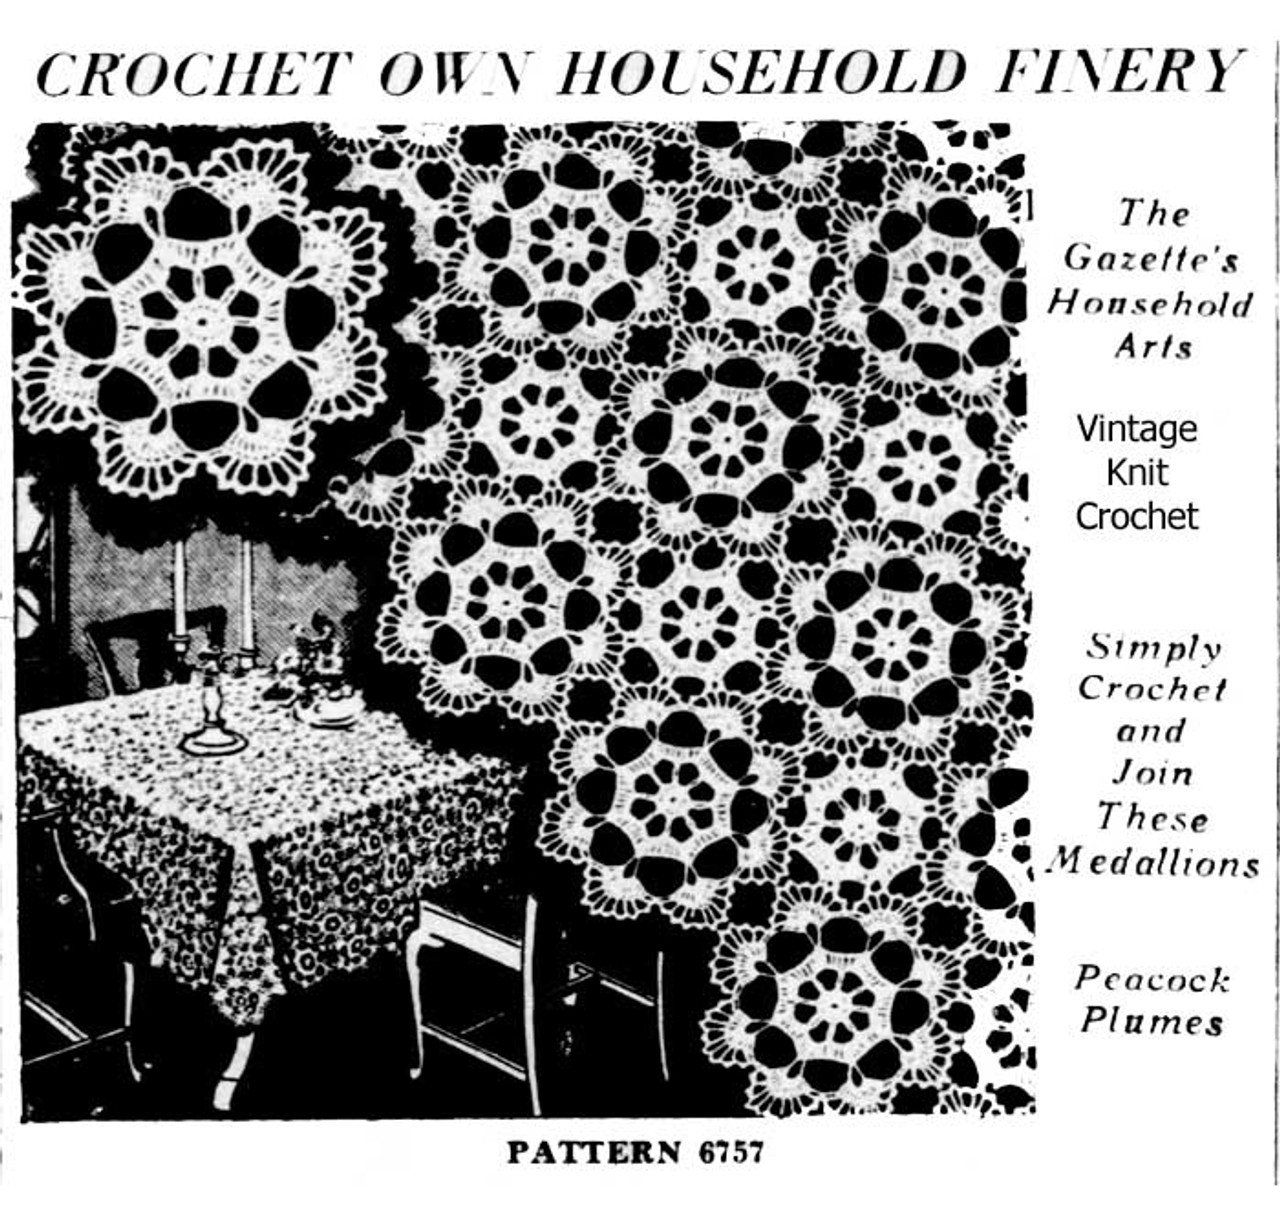 Crochet Peacock Plumes Tablecloth Pattern Medallion No 6757